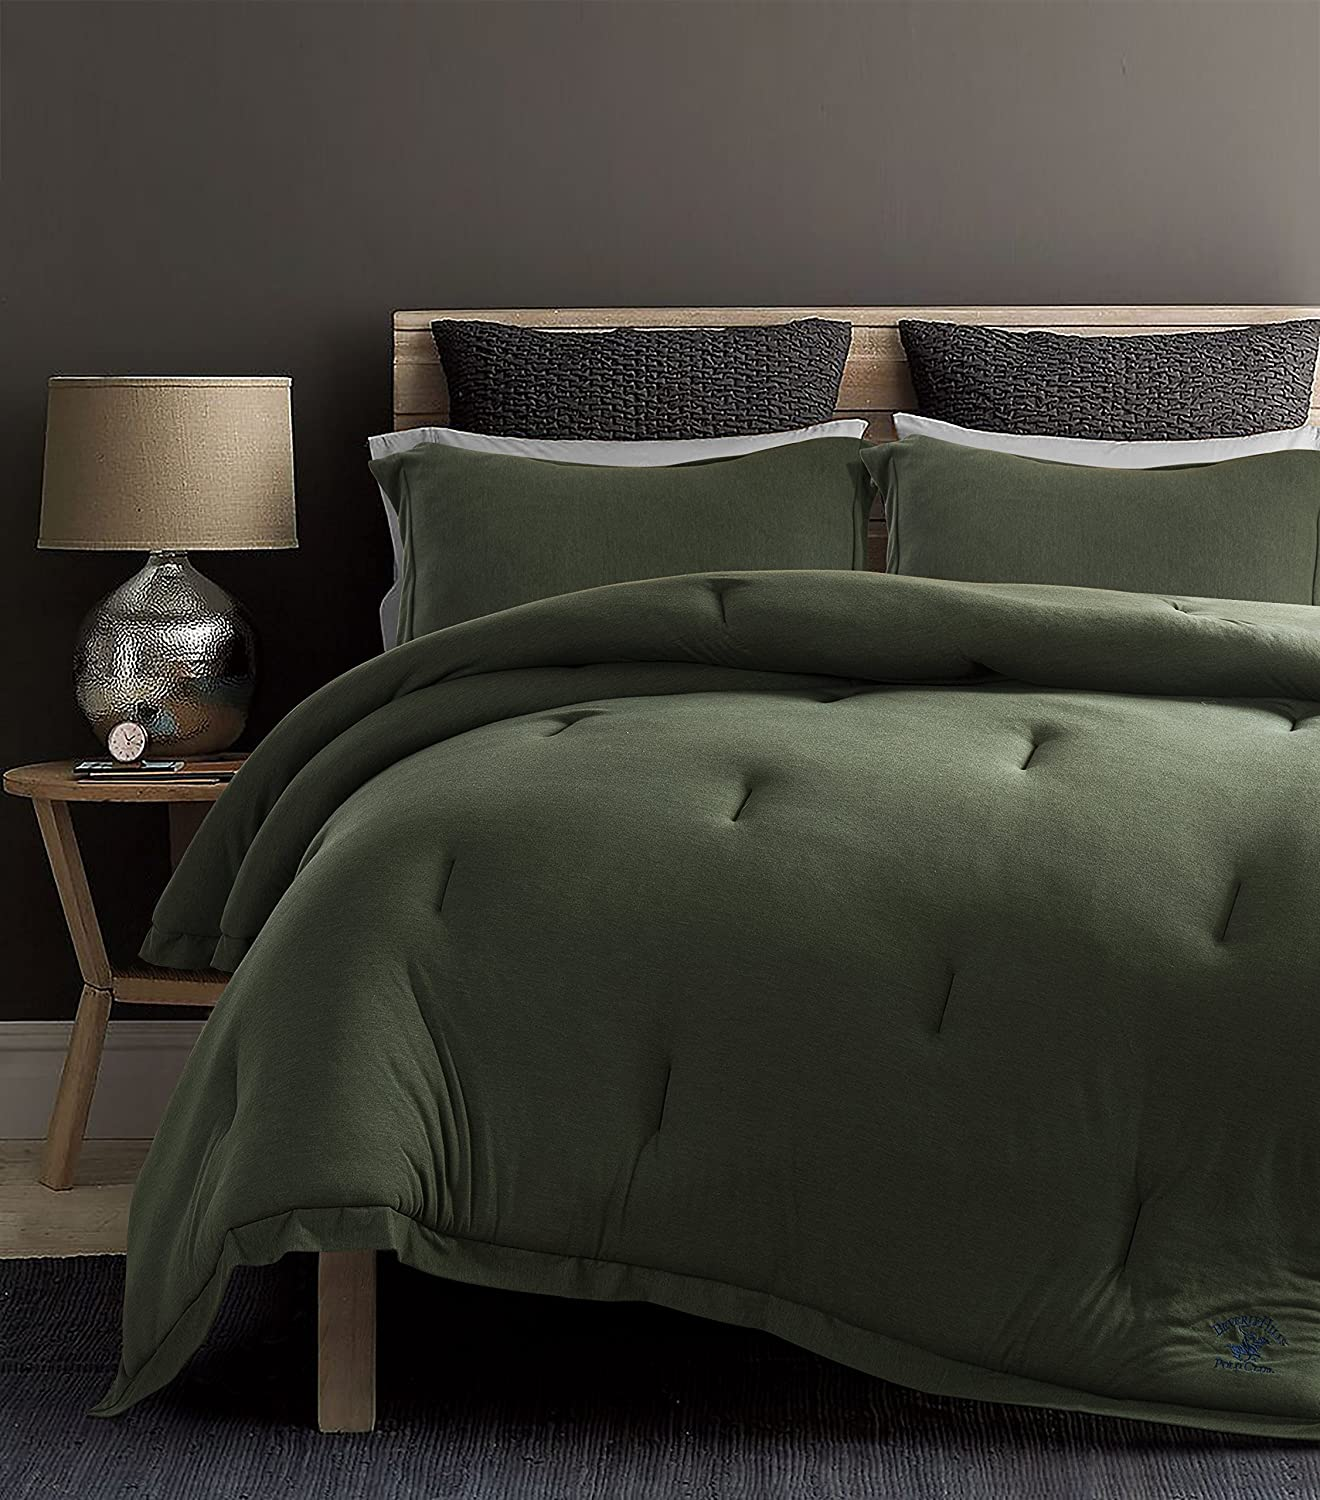 Beverly Hills Polo Club Olive Queen Cotton Rich Ultra-Soft Jersey Knit Comforter Set, 3 Piece